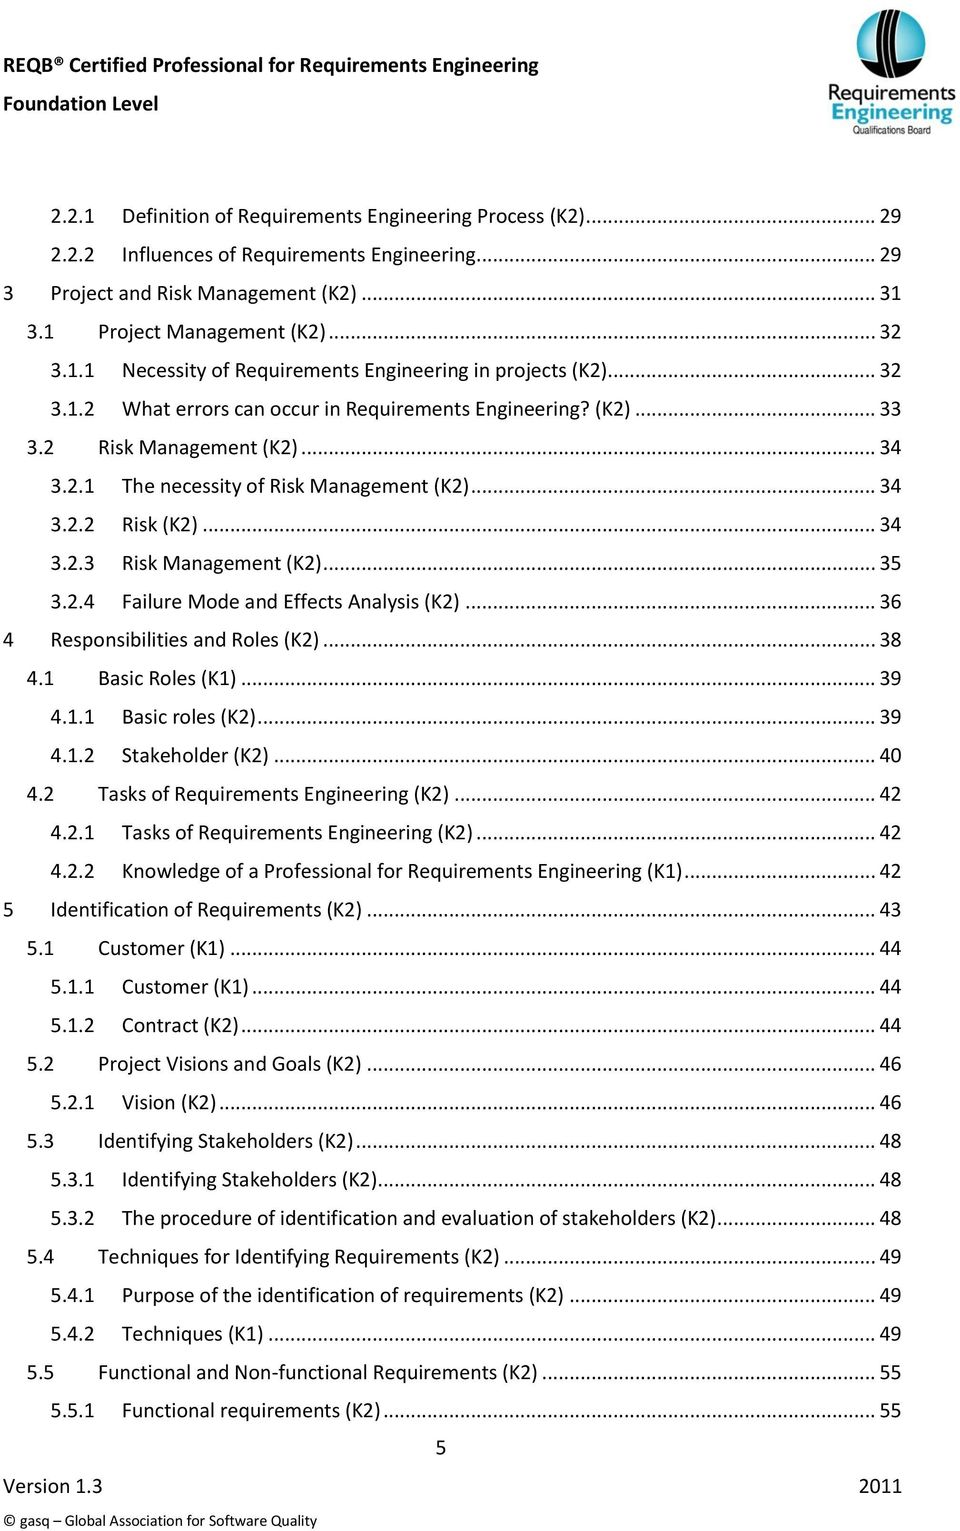 .. 35 3.2.4 Failure Mode and Effects Analysis (K2)... 36 4 Responsibilities and Roles (K2)... 38 4.1 Basic Roles (K1)... 39 4.1.1 Basic roles (K2)... 39 4.1.2 Stakeholder (K2)... 40 4.